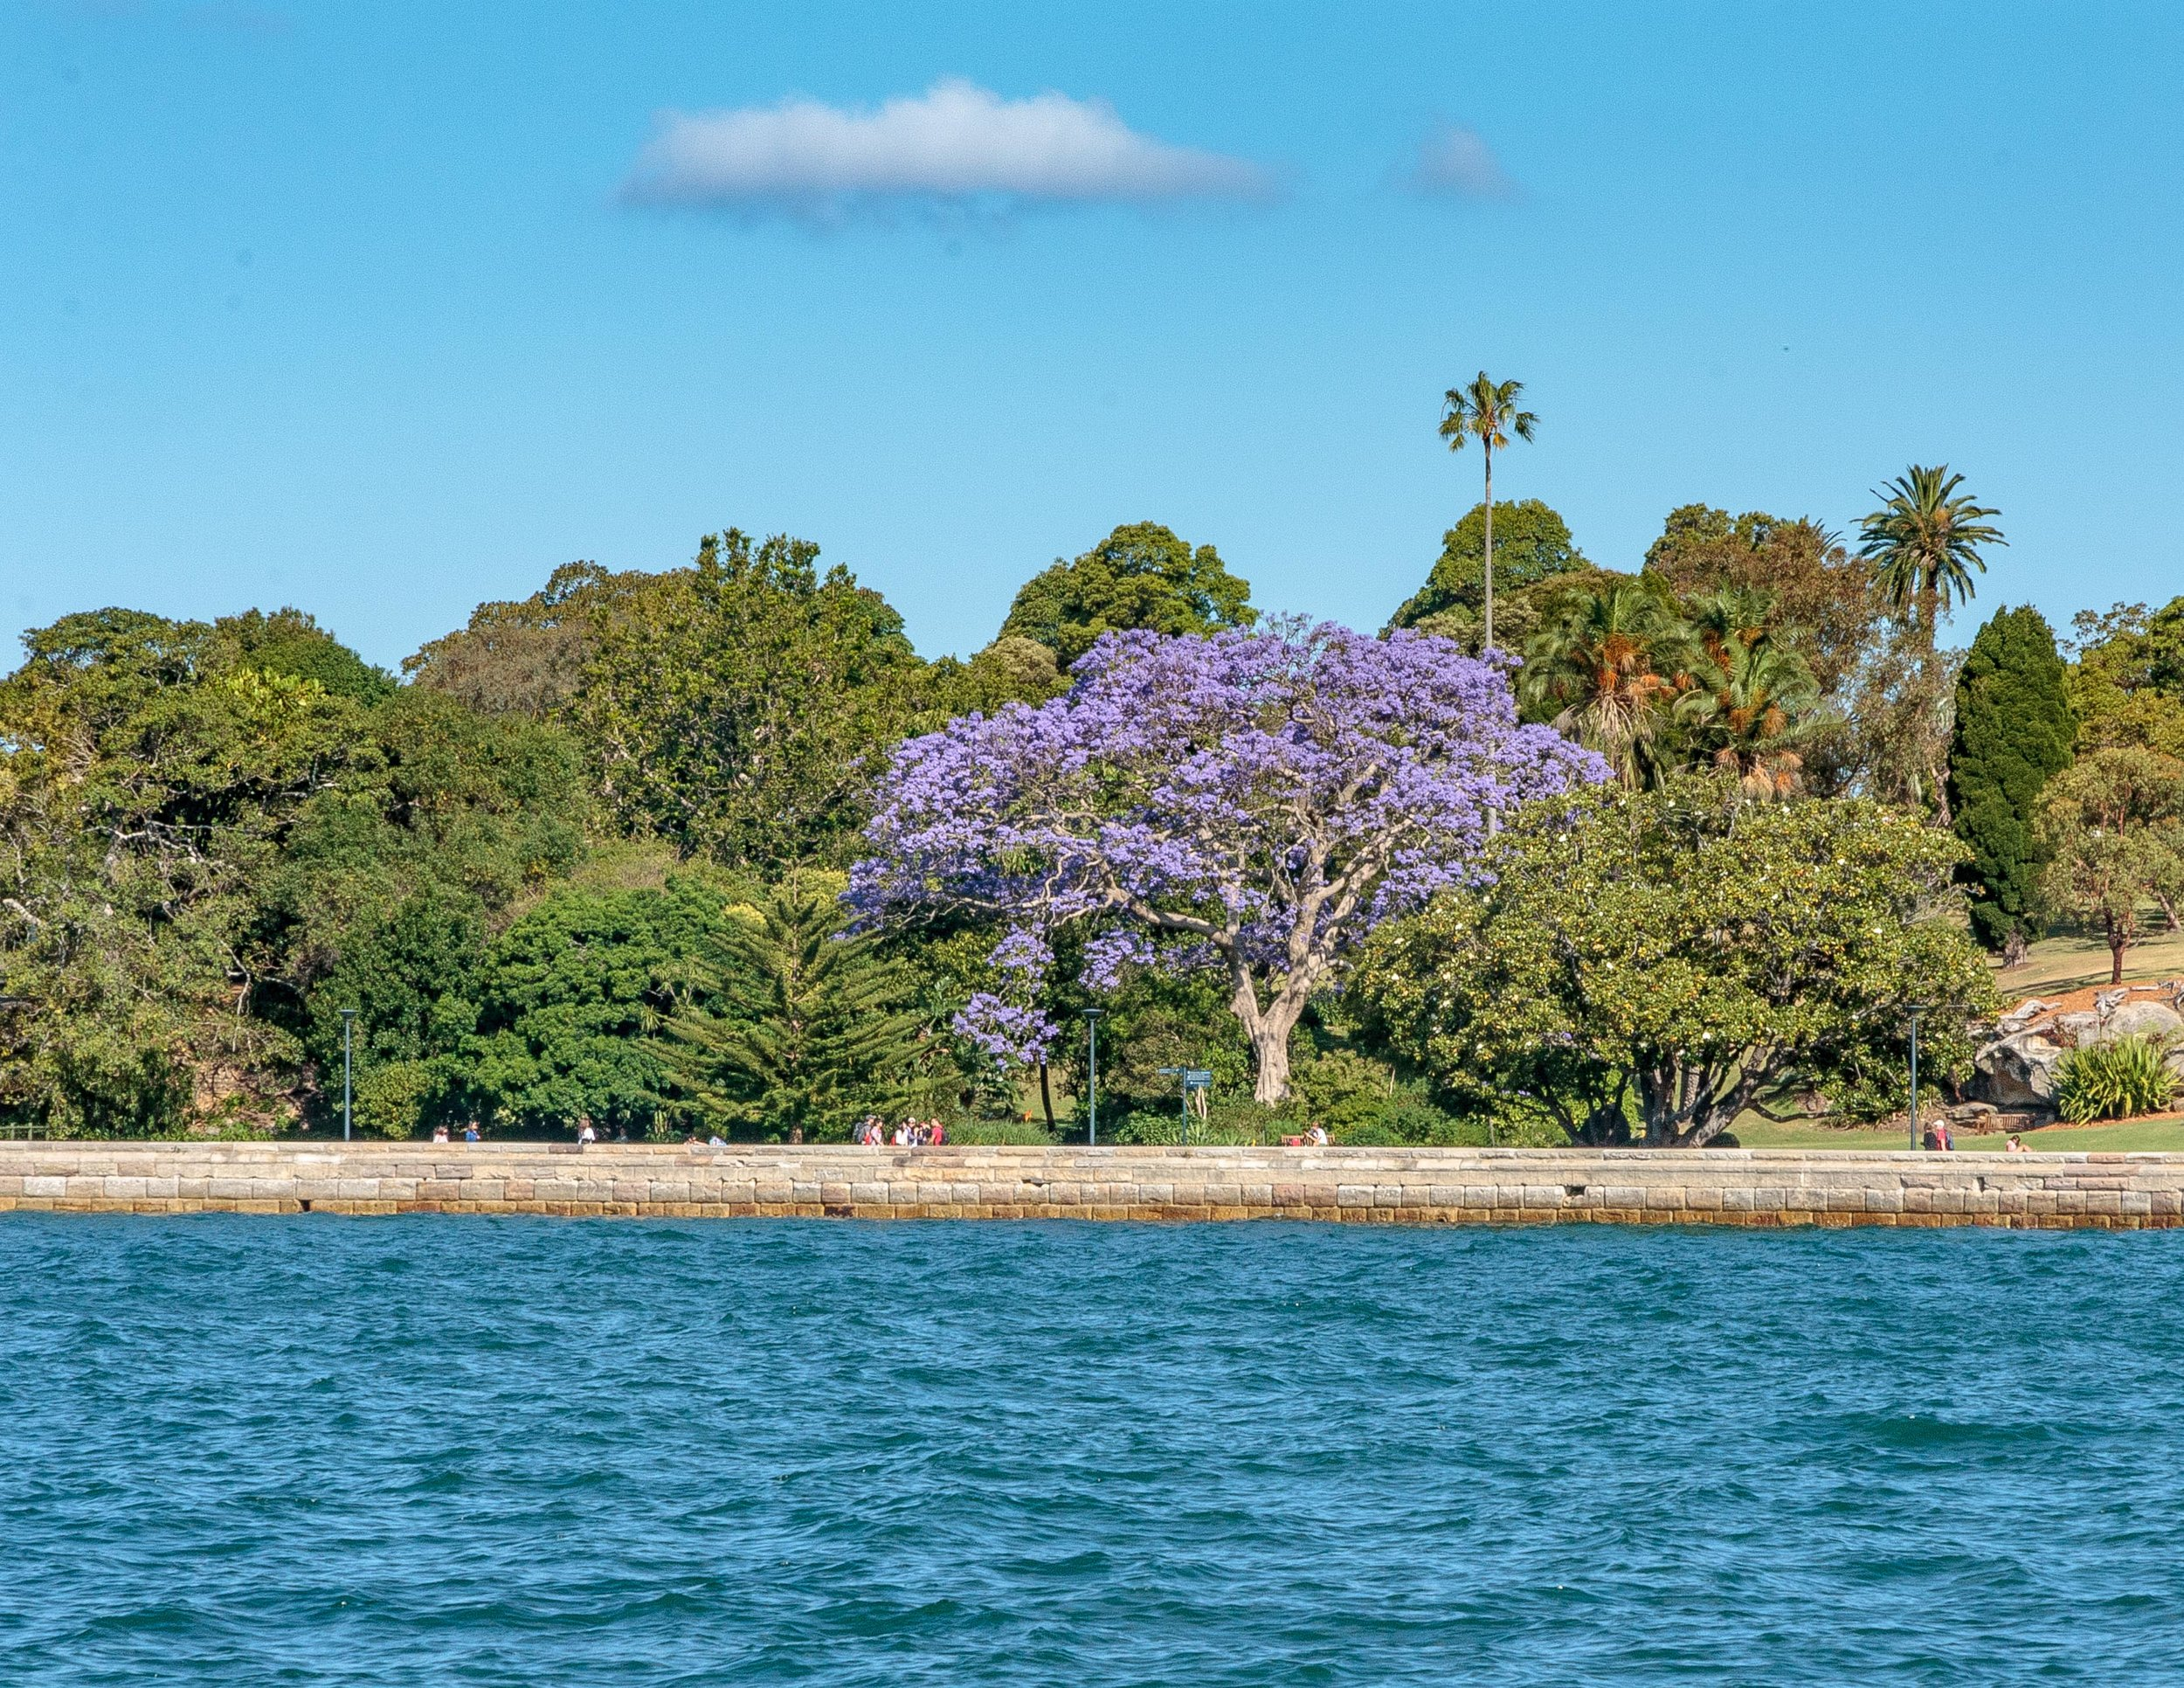 Best things to do in Sydney for free: Walk round the Botanic Gardens